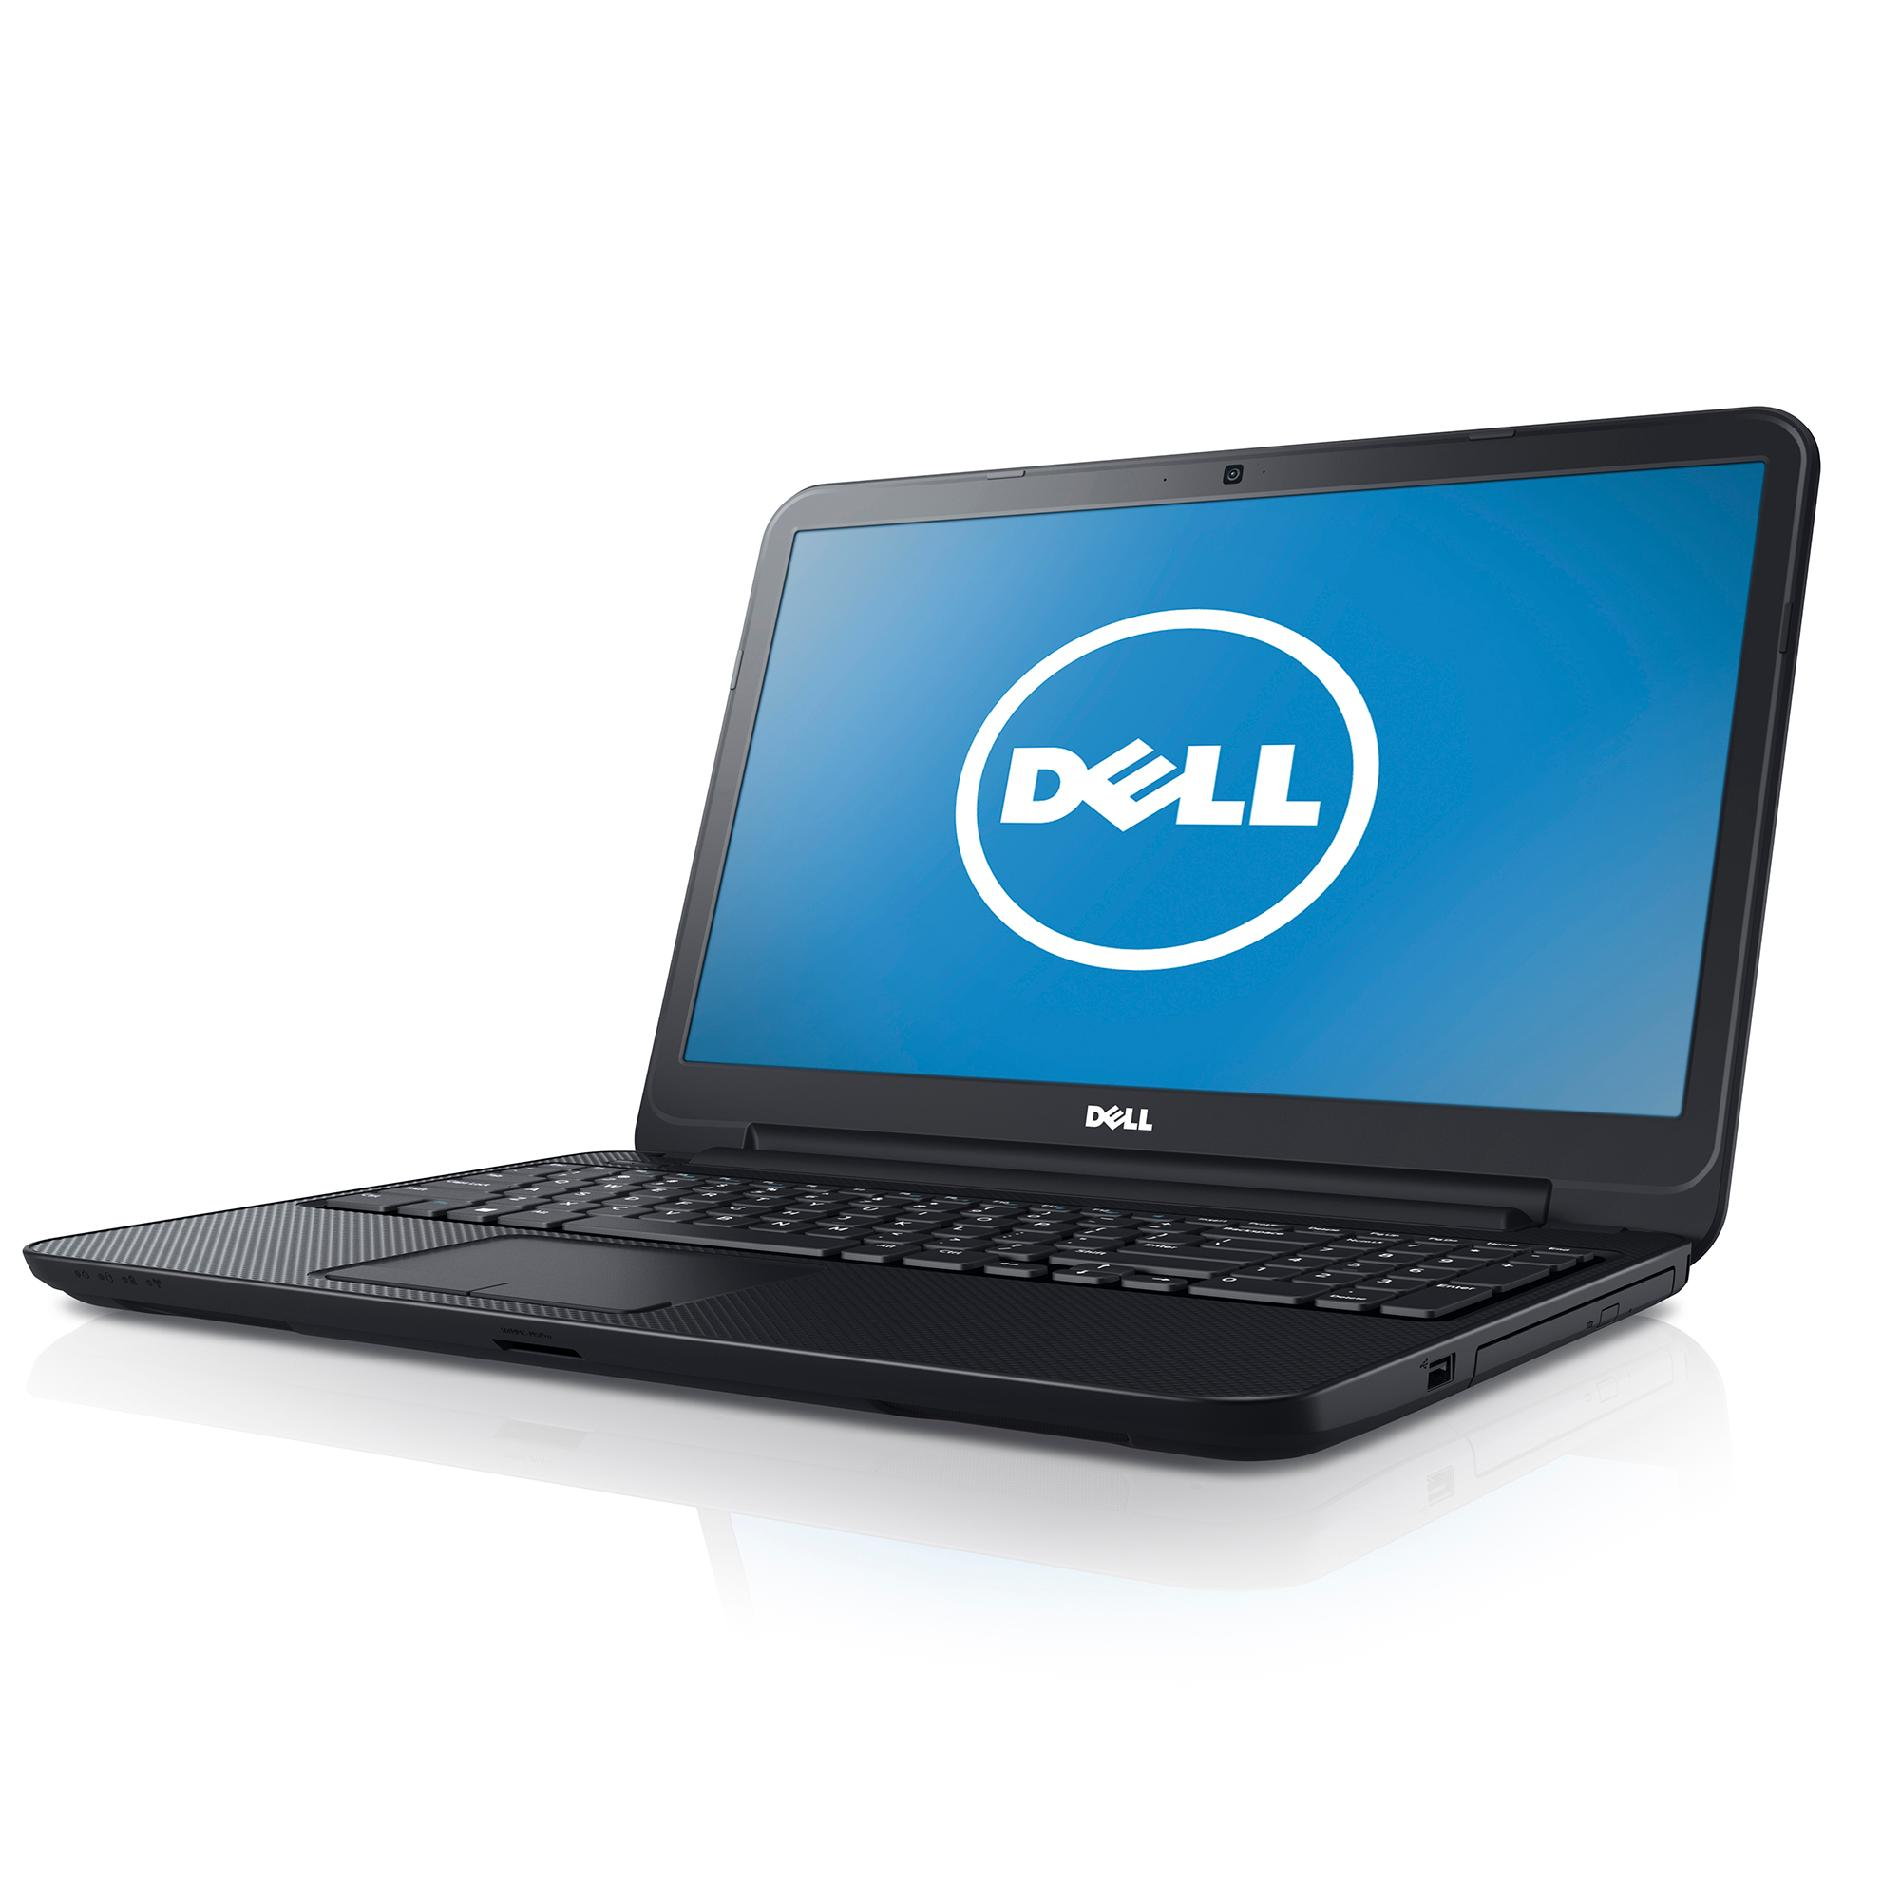 Dell Inspiron i15RV-7381Notebook with 3rd Gen Intel Core i3-3227U 1.9GHz 4GB 500GB